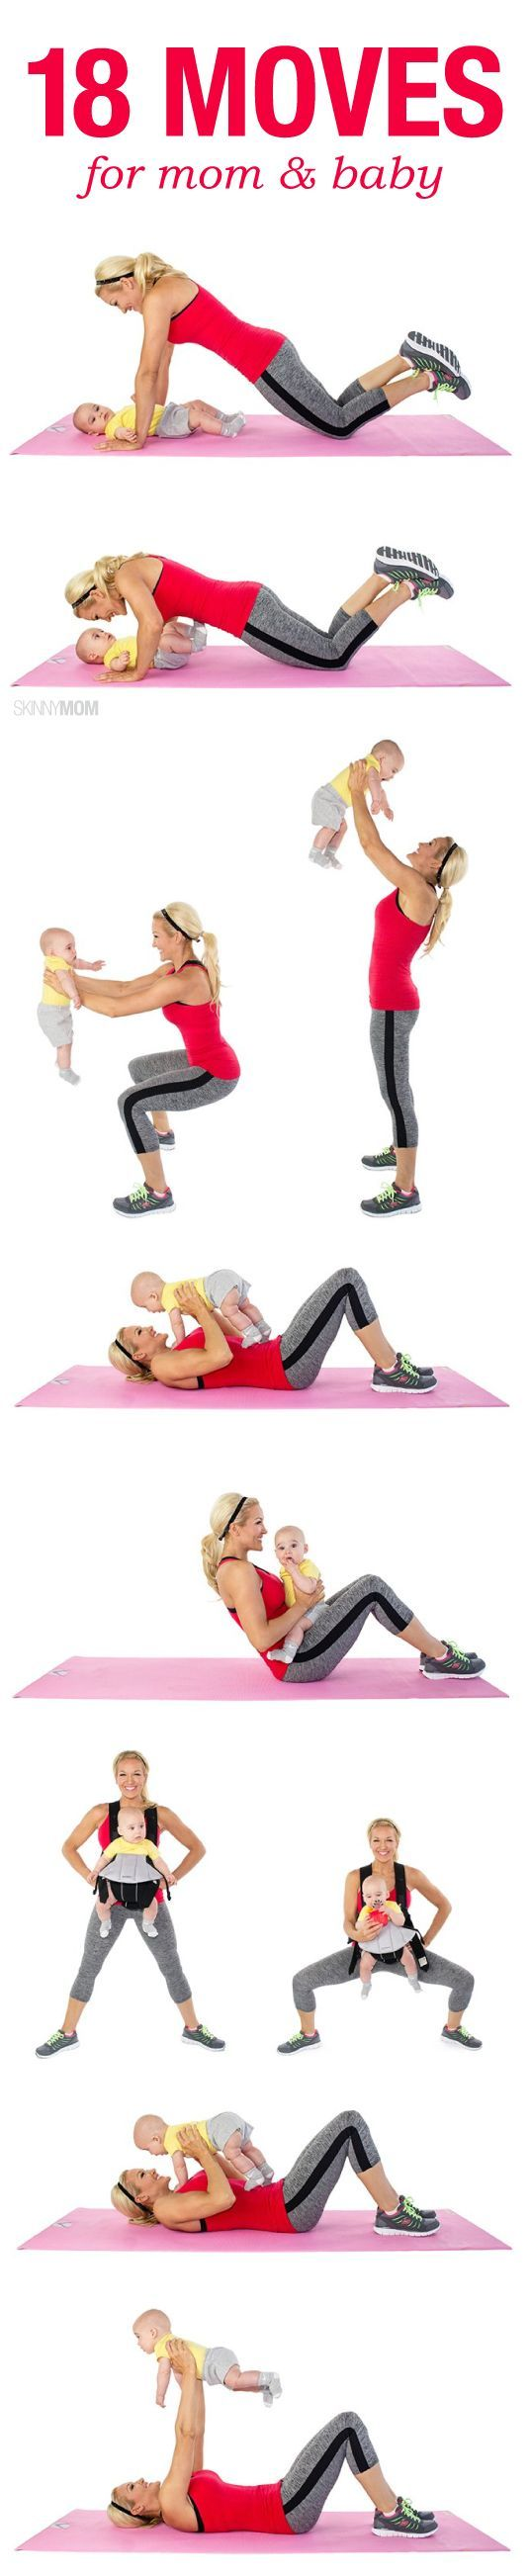 Let your baby be your weight with these 18 fitness moves to do with your little one by your side.